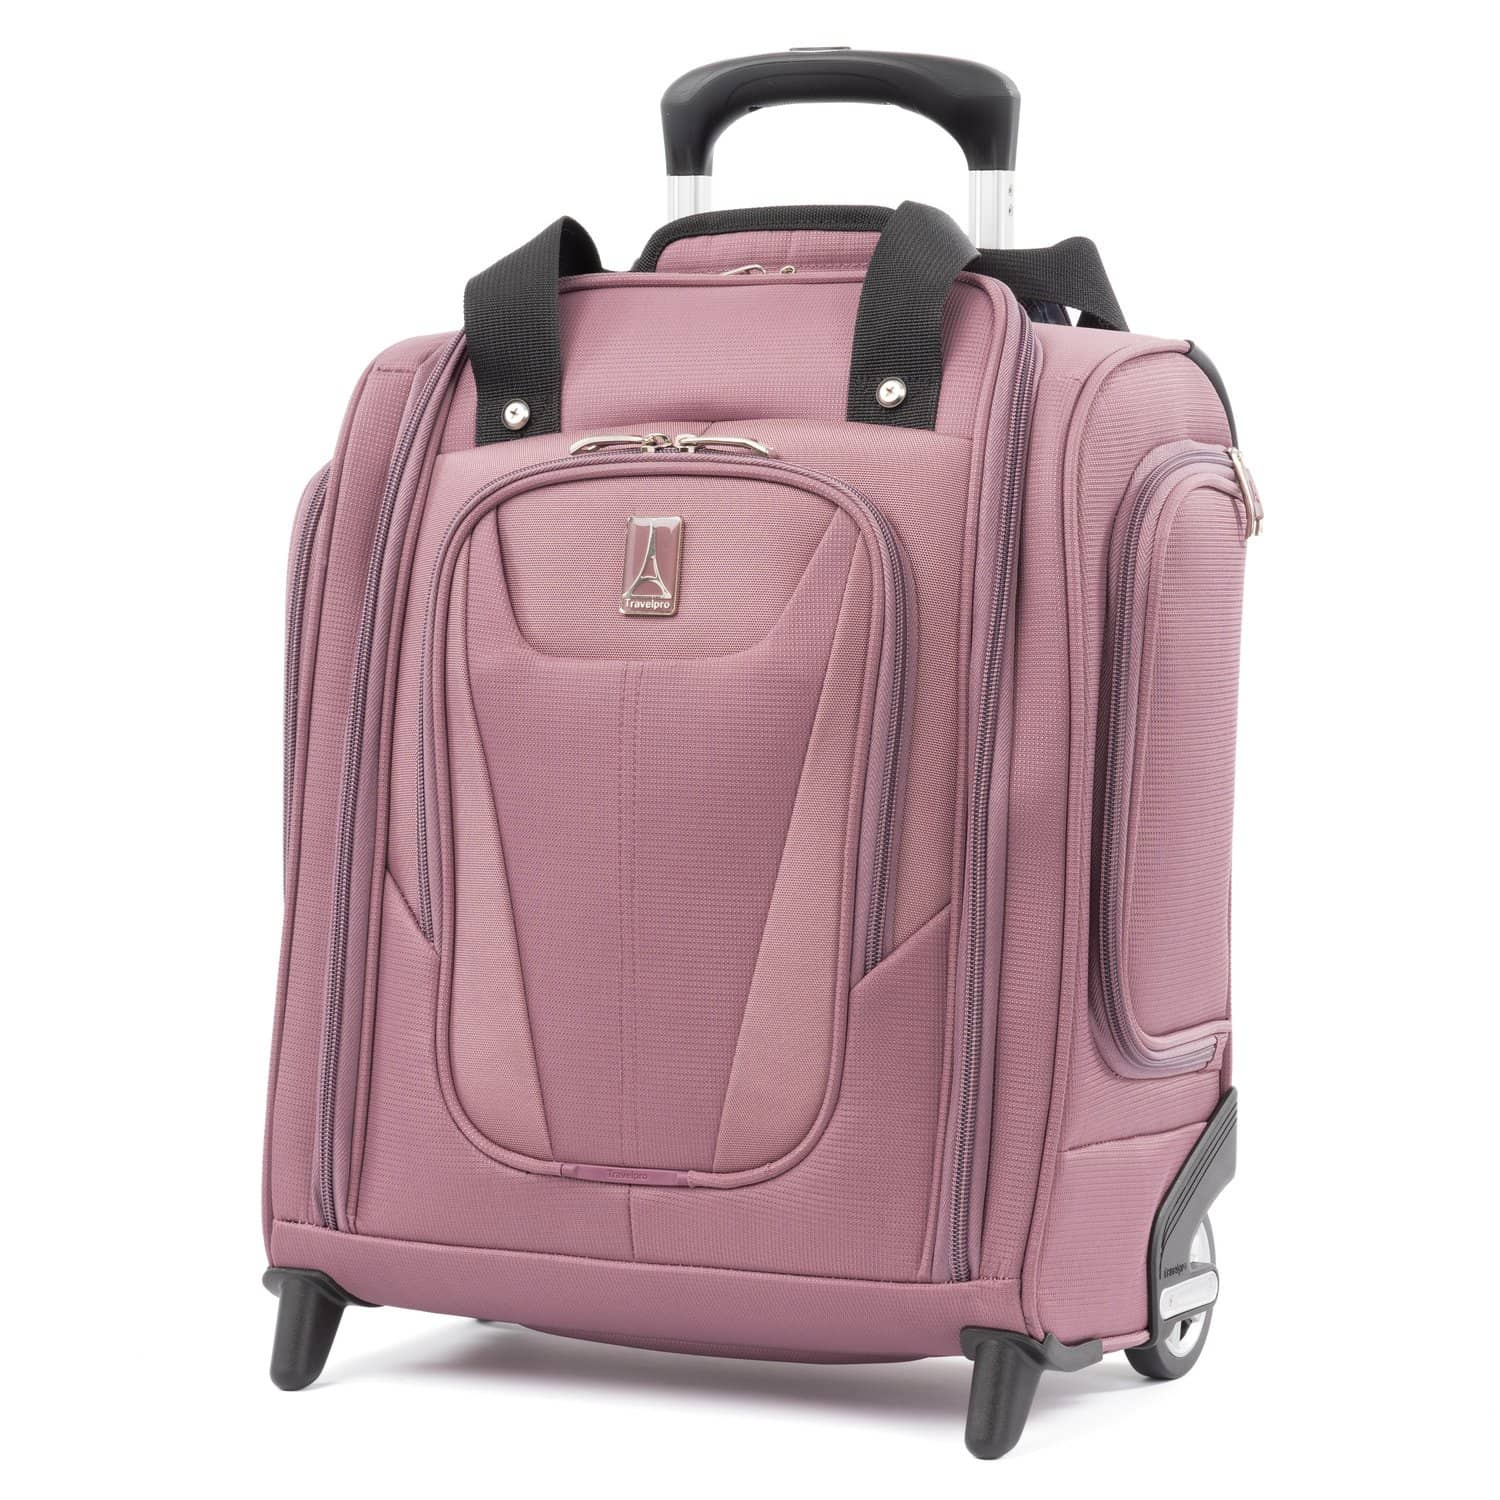 Travelpro Maxlite® 5 Rolling Underseat Carry-on DUSTY ROSE